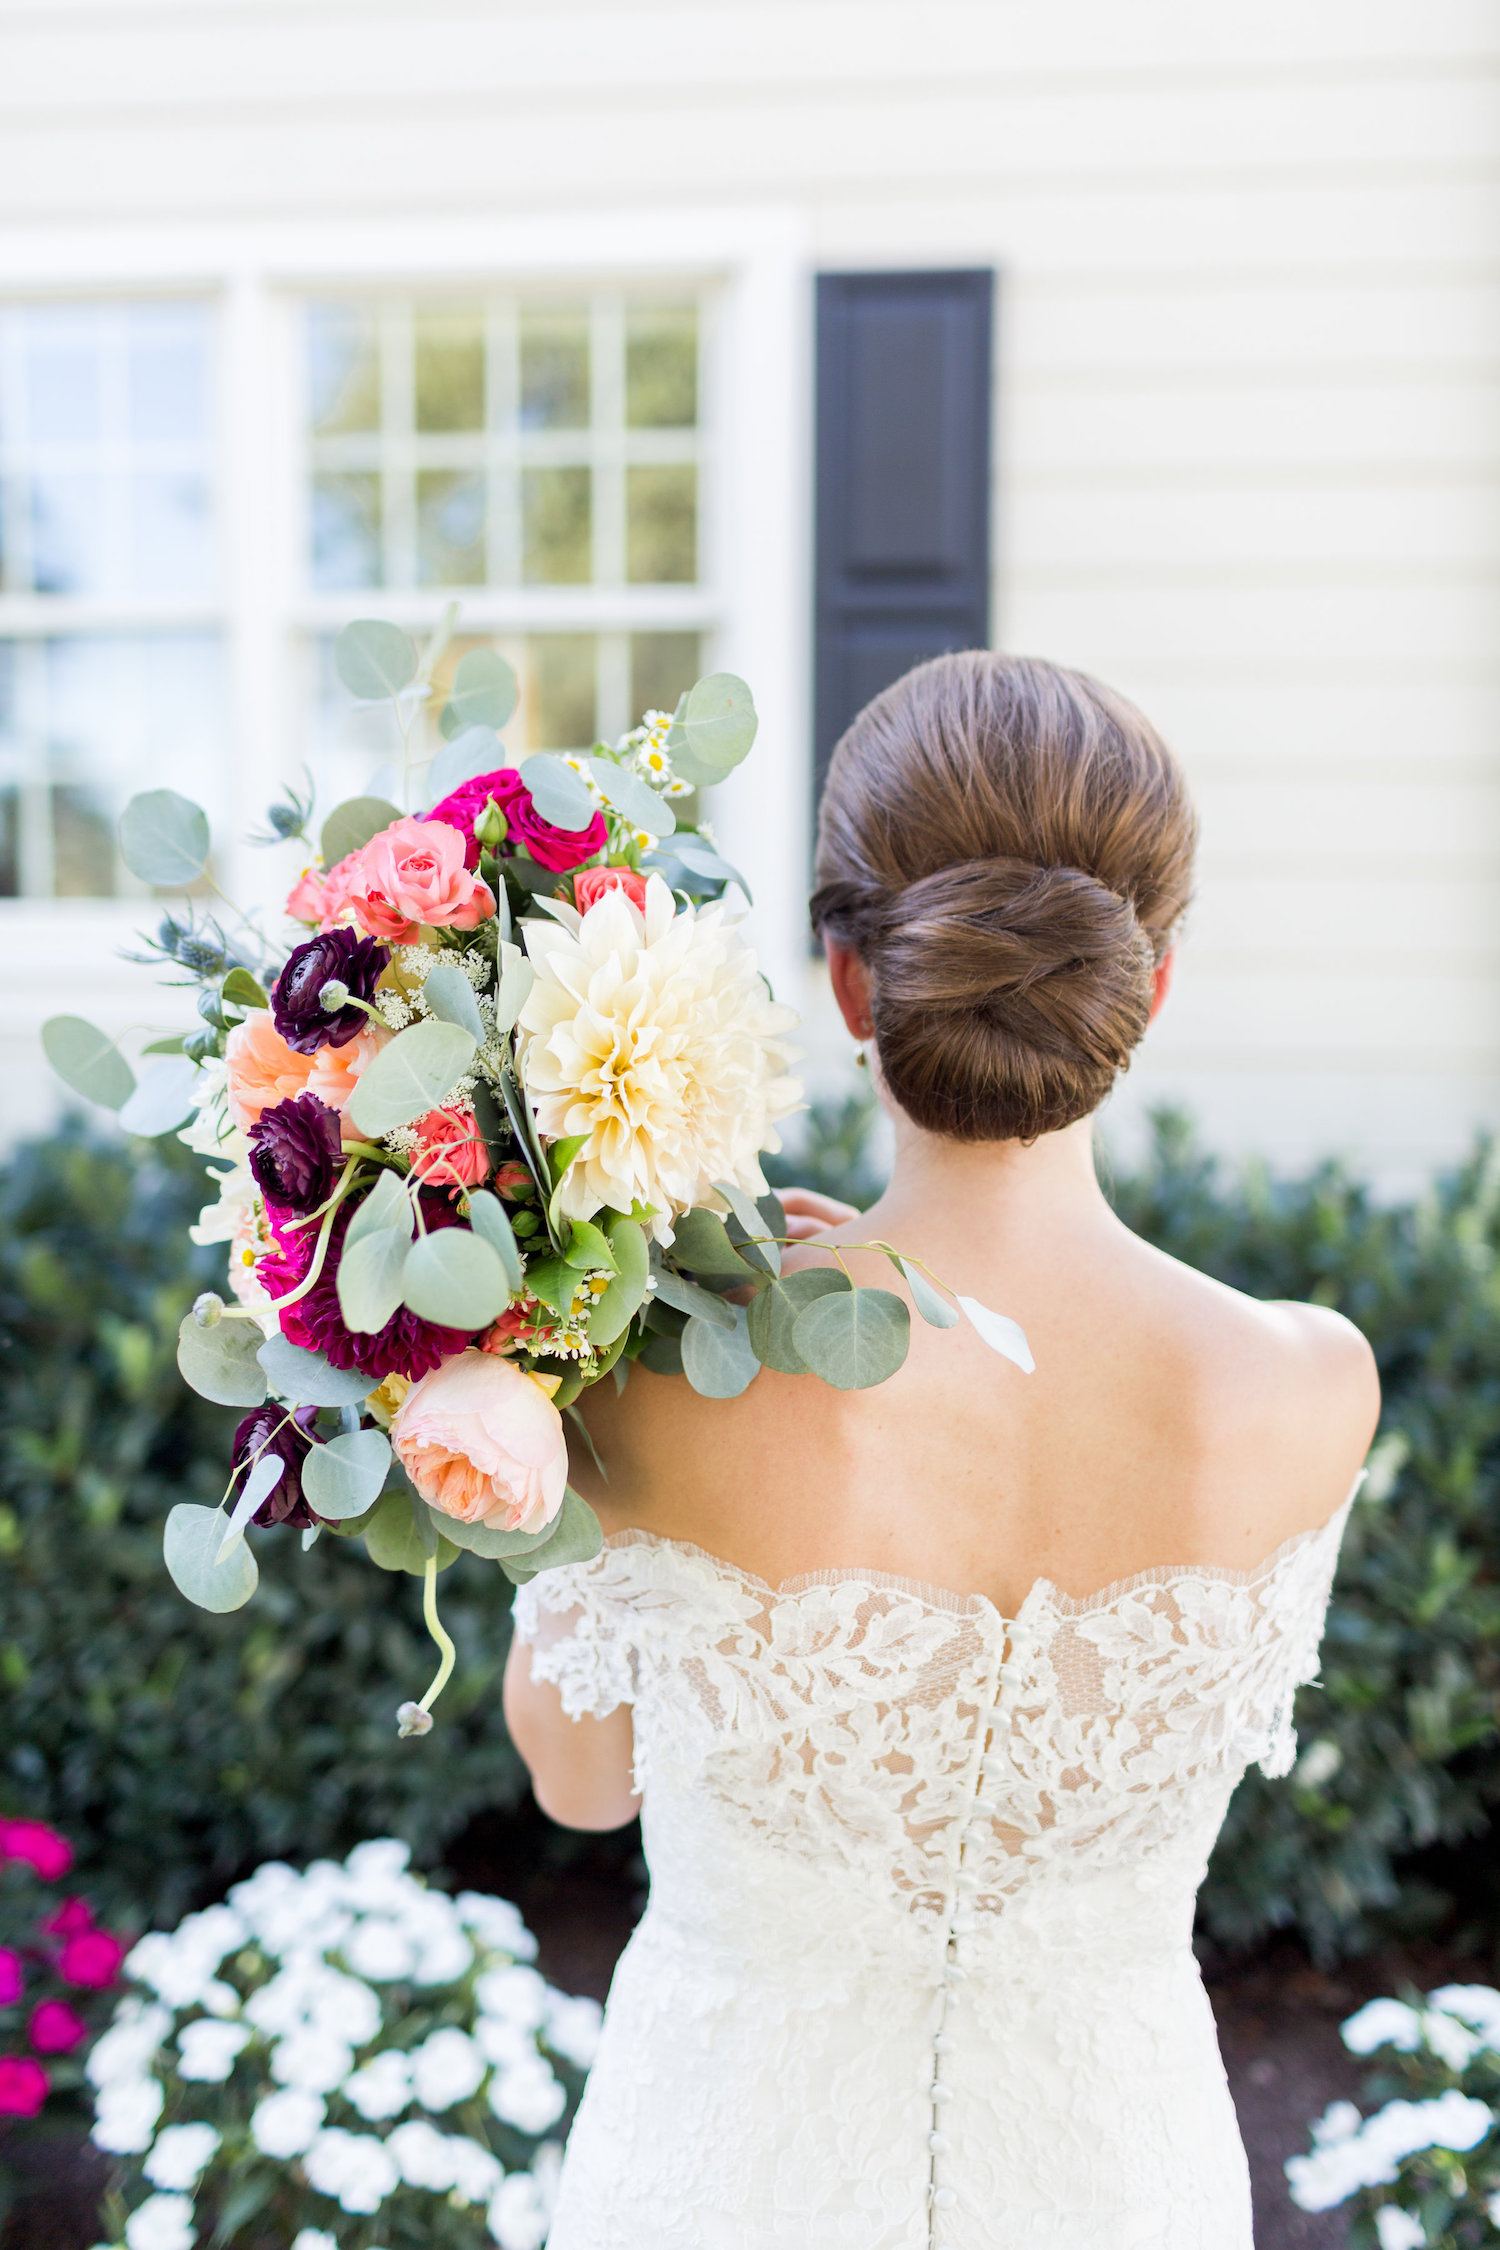 Kir2ben-abby-burgundy-flowers-pink-ivory-greens-bridal-bouquet-jmorrisflowers.jpg